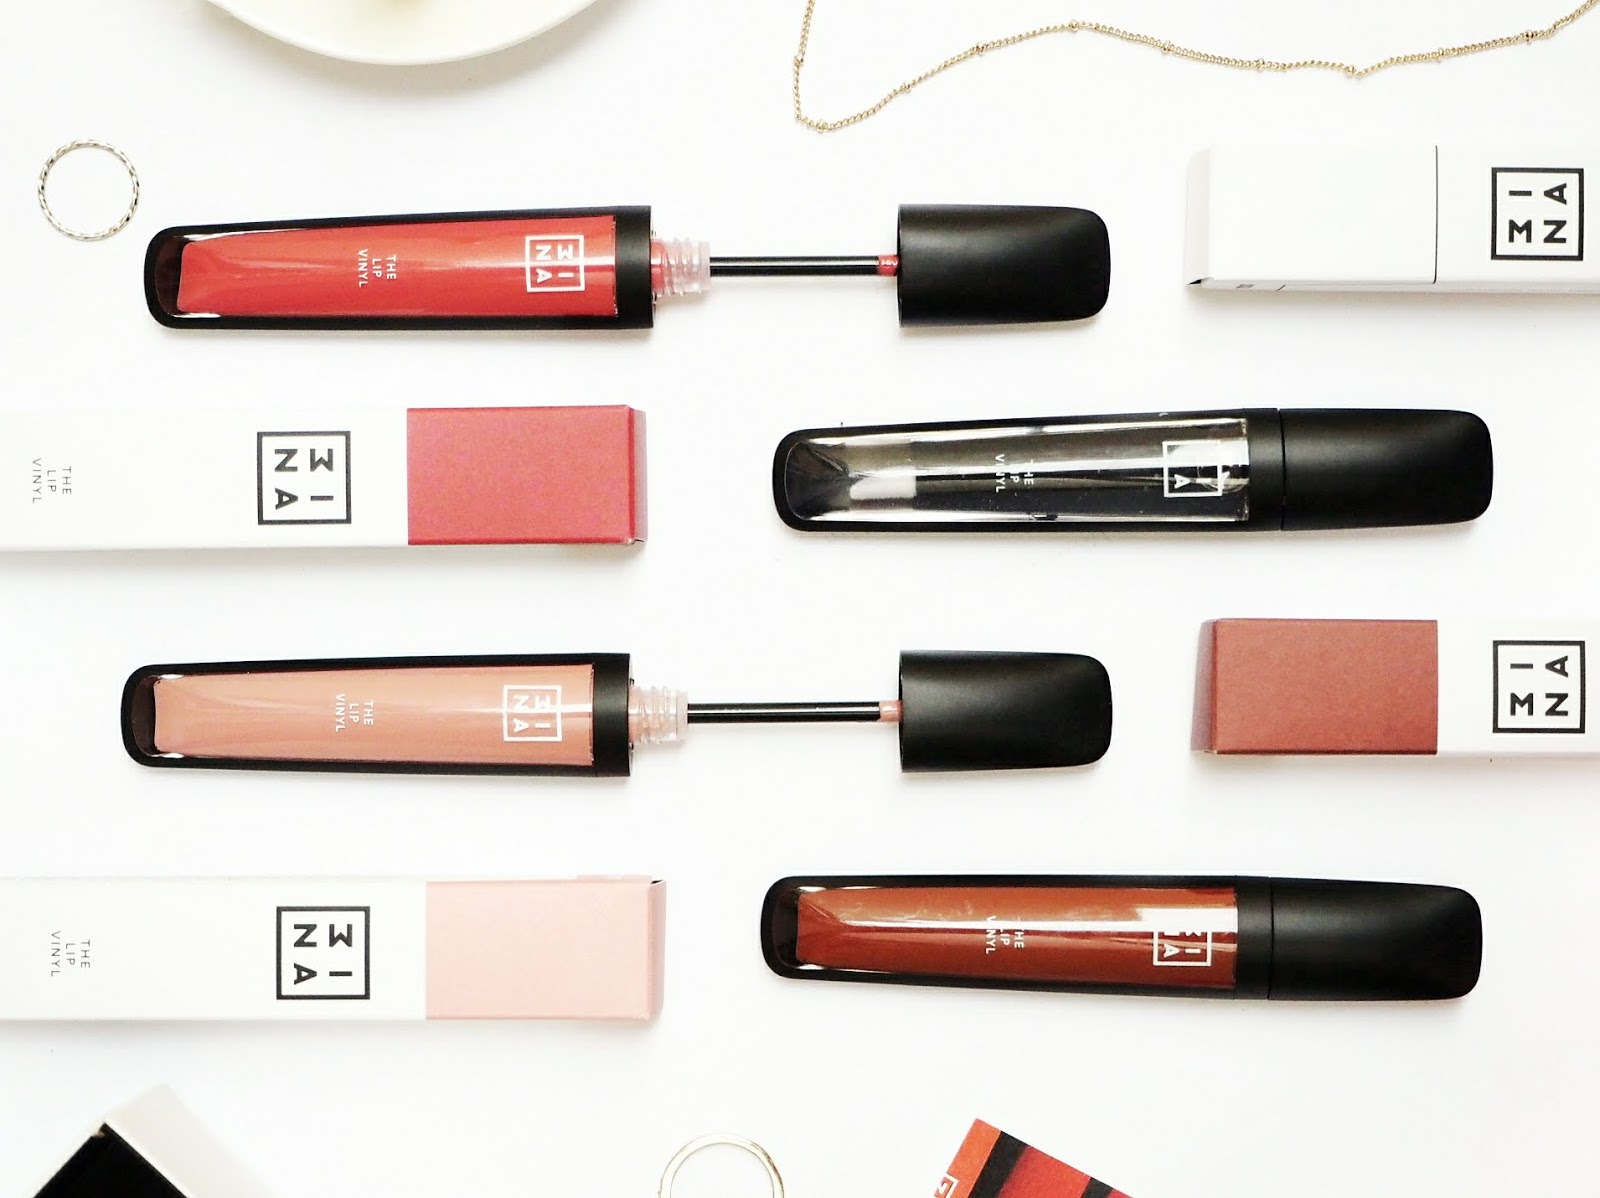 The 3INA Lip Vinyl | Review